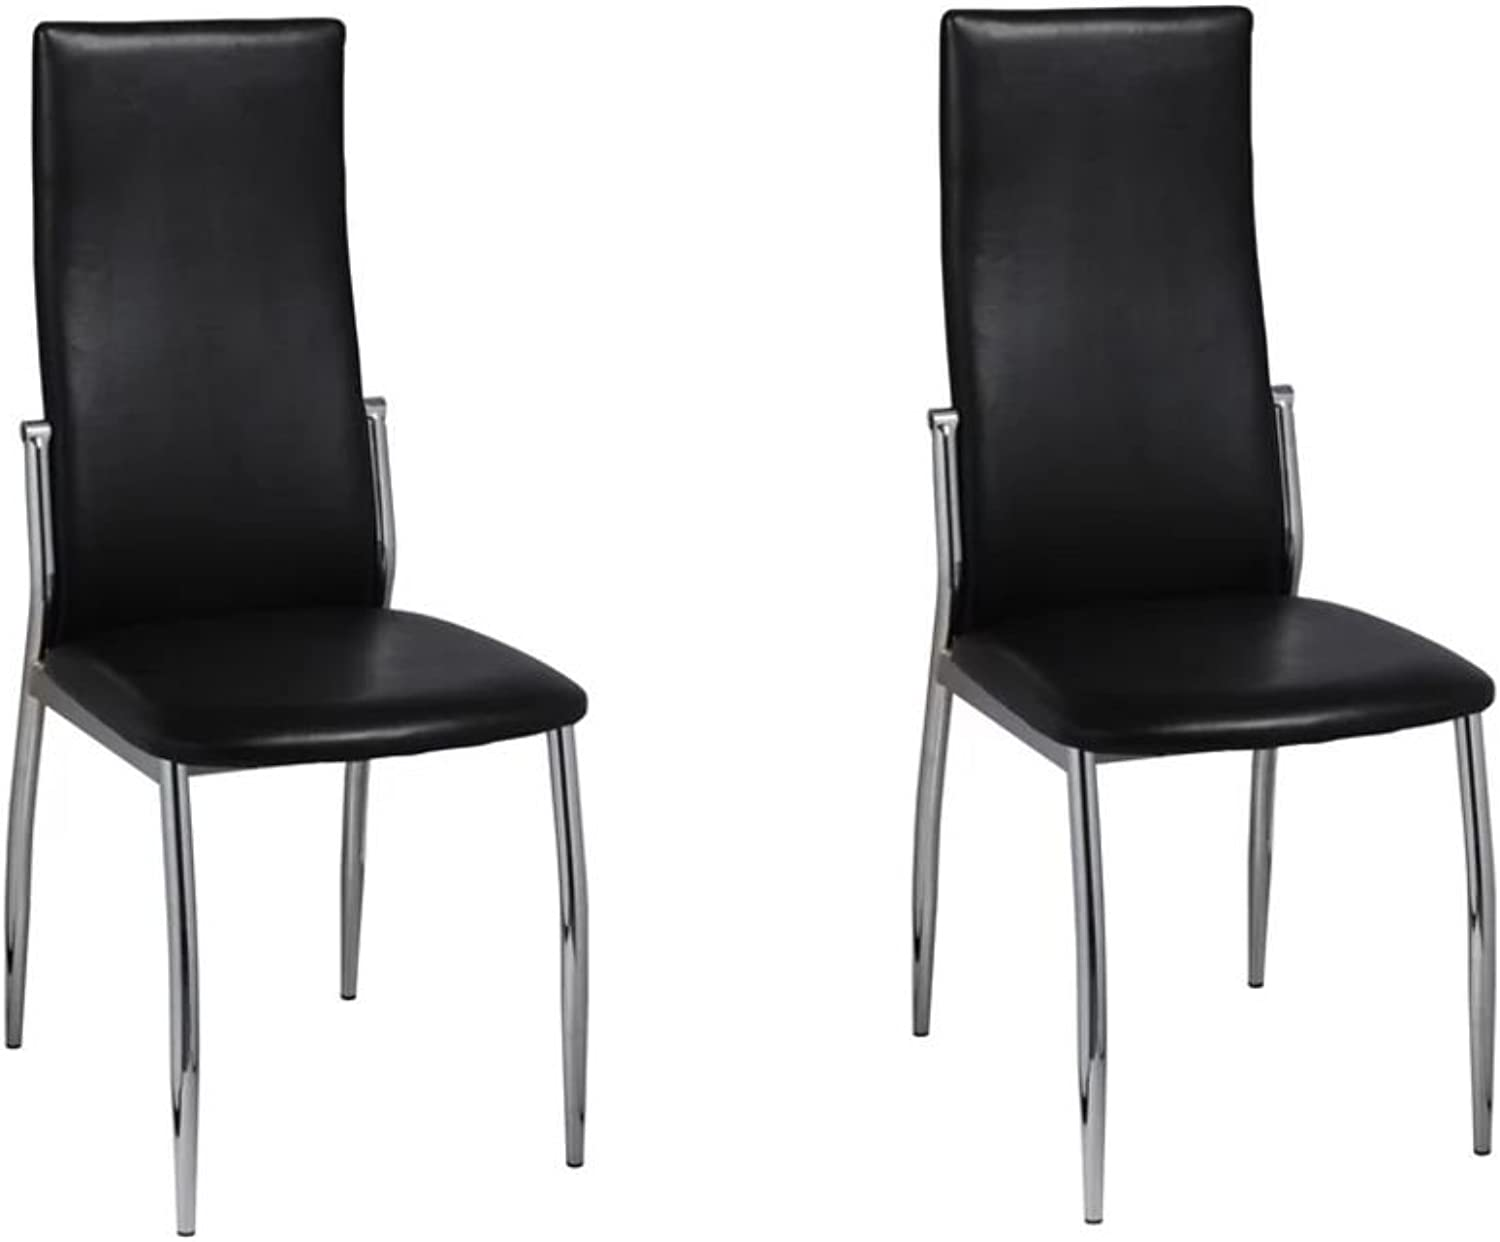 Festnight Dining Chairs Restaurant Stool 2 pcs Artificial Leather Chair Office Chair Black